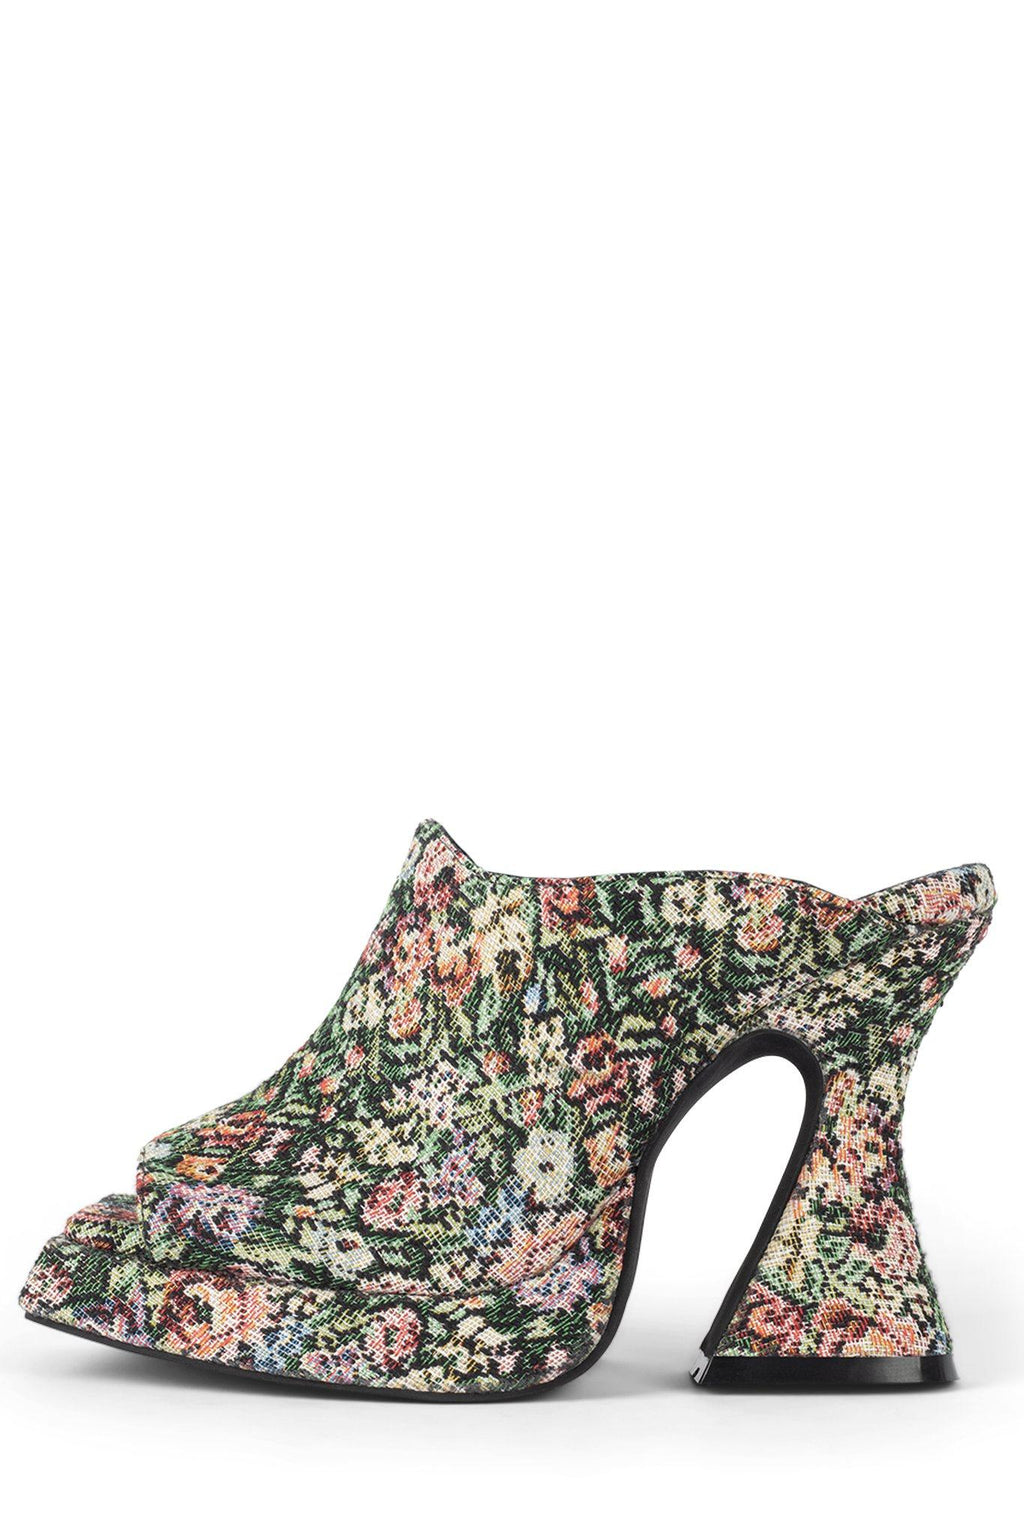 THE-CULT HS Multi Floral Tapestry 6